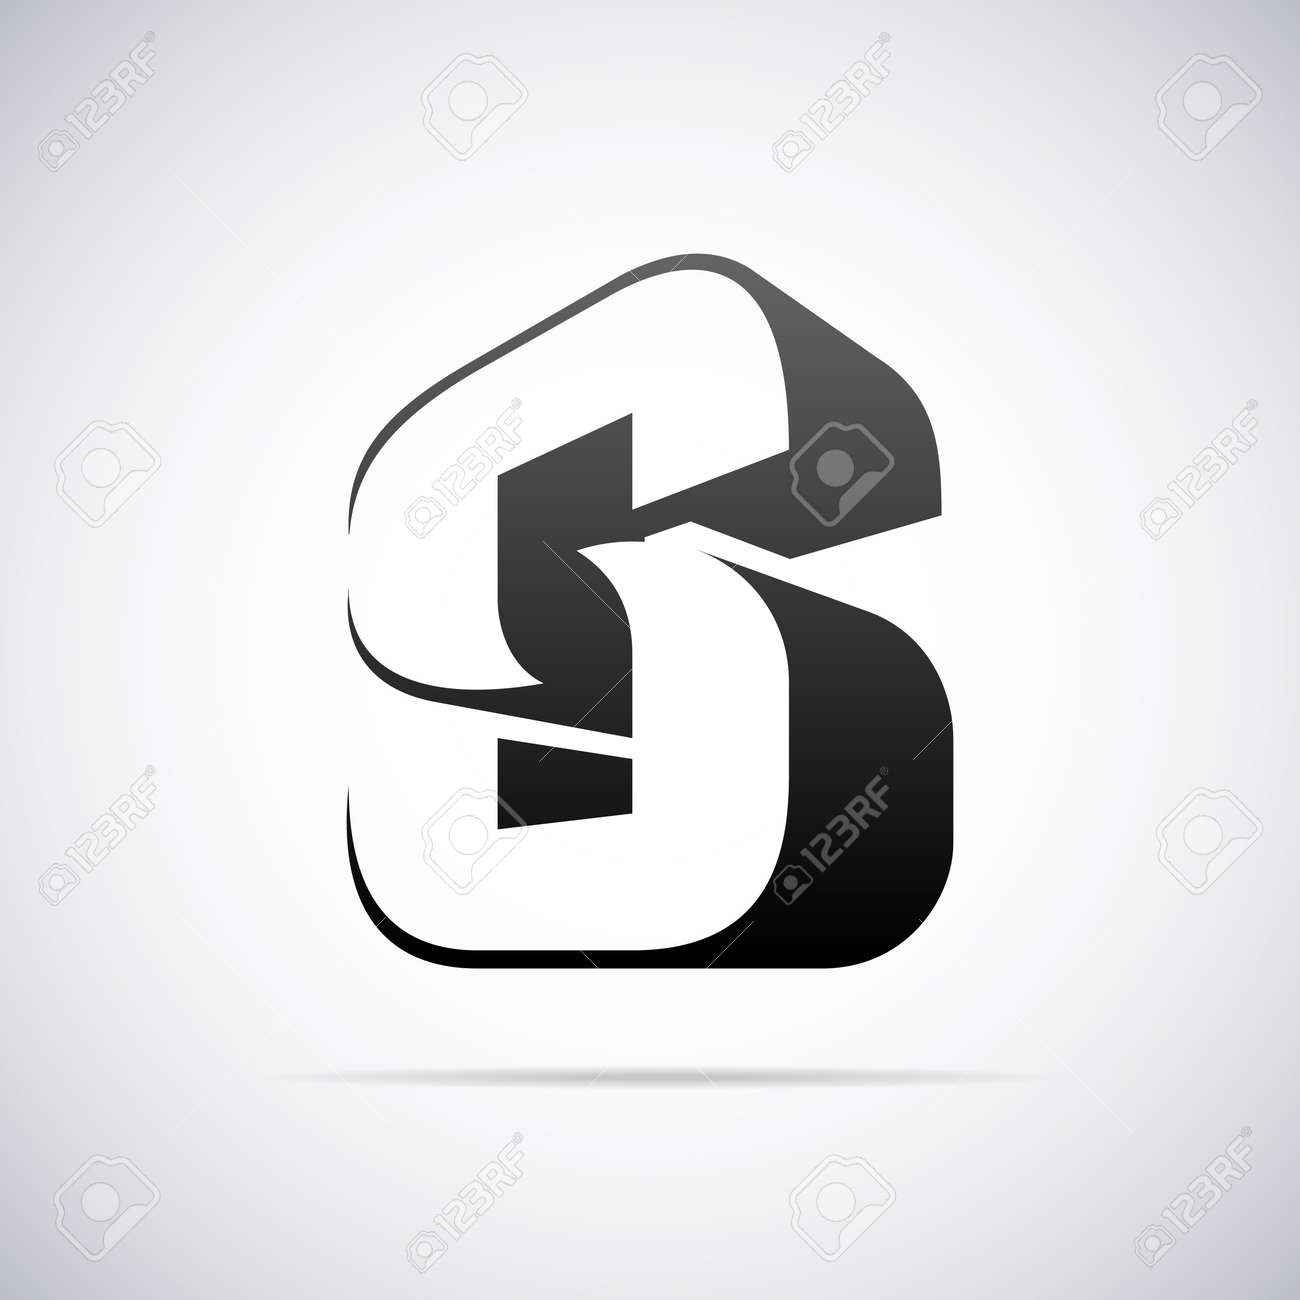 Letter S Design Template Vector Illustration Royalty Free Cliparts